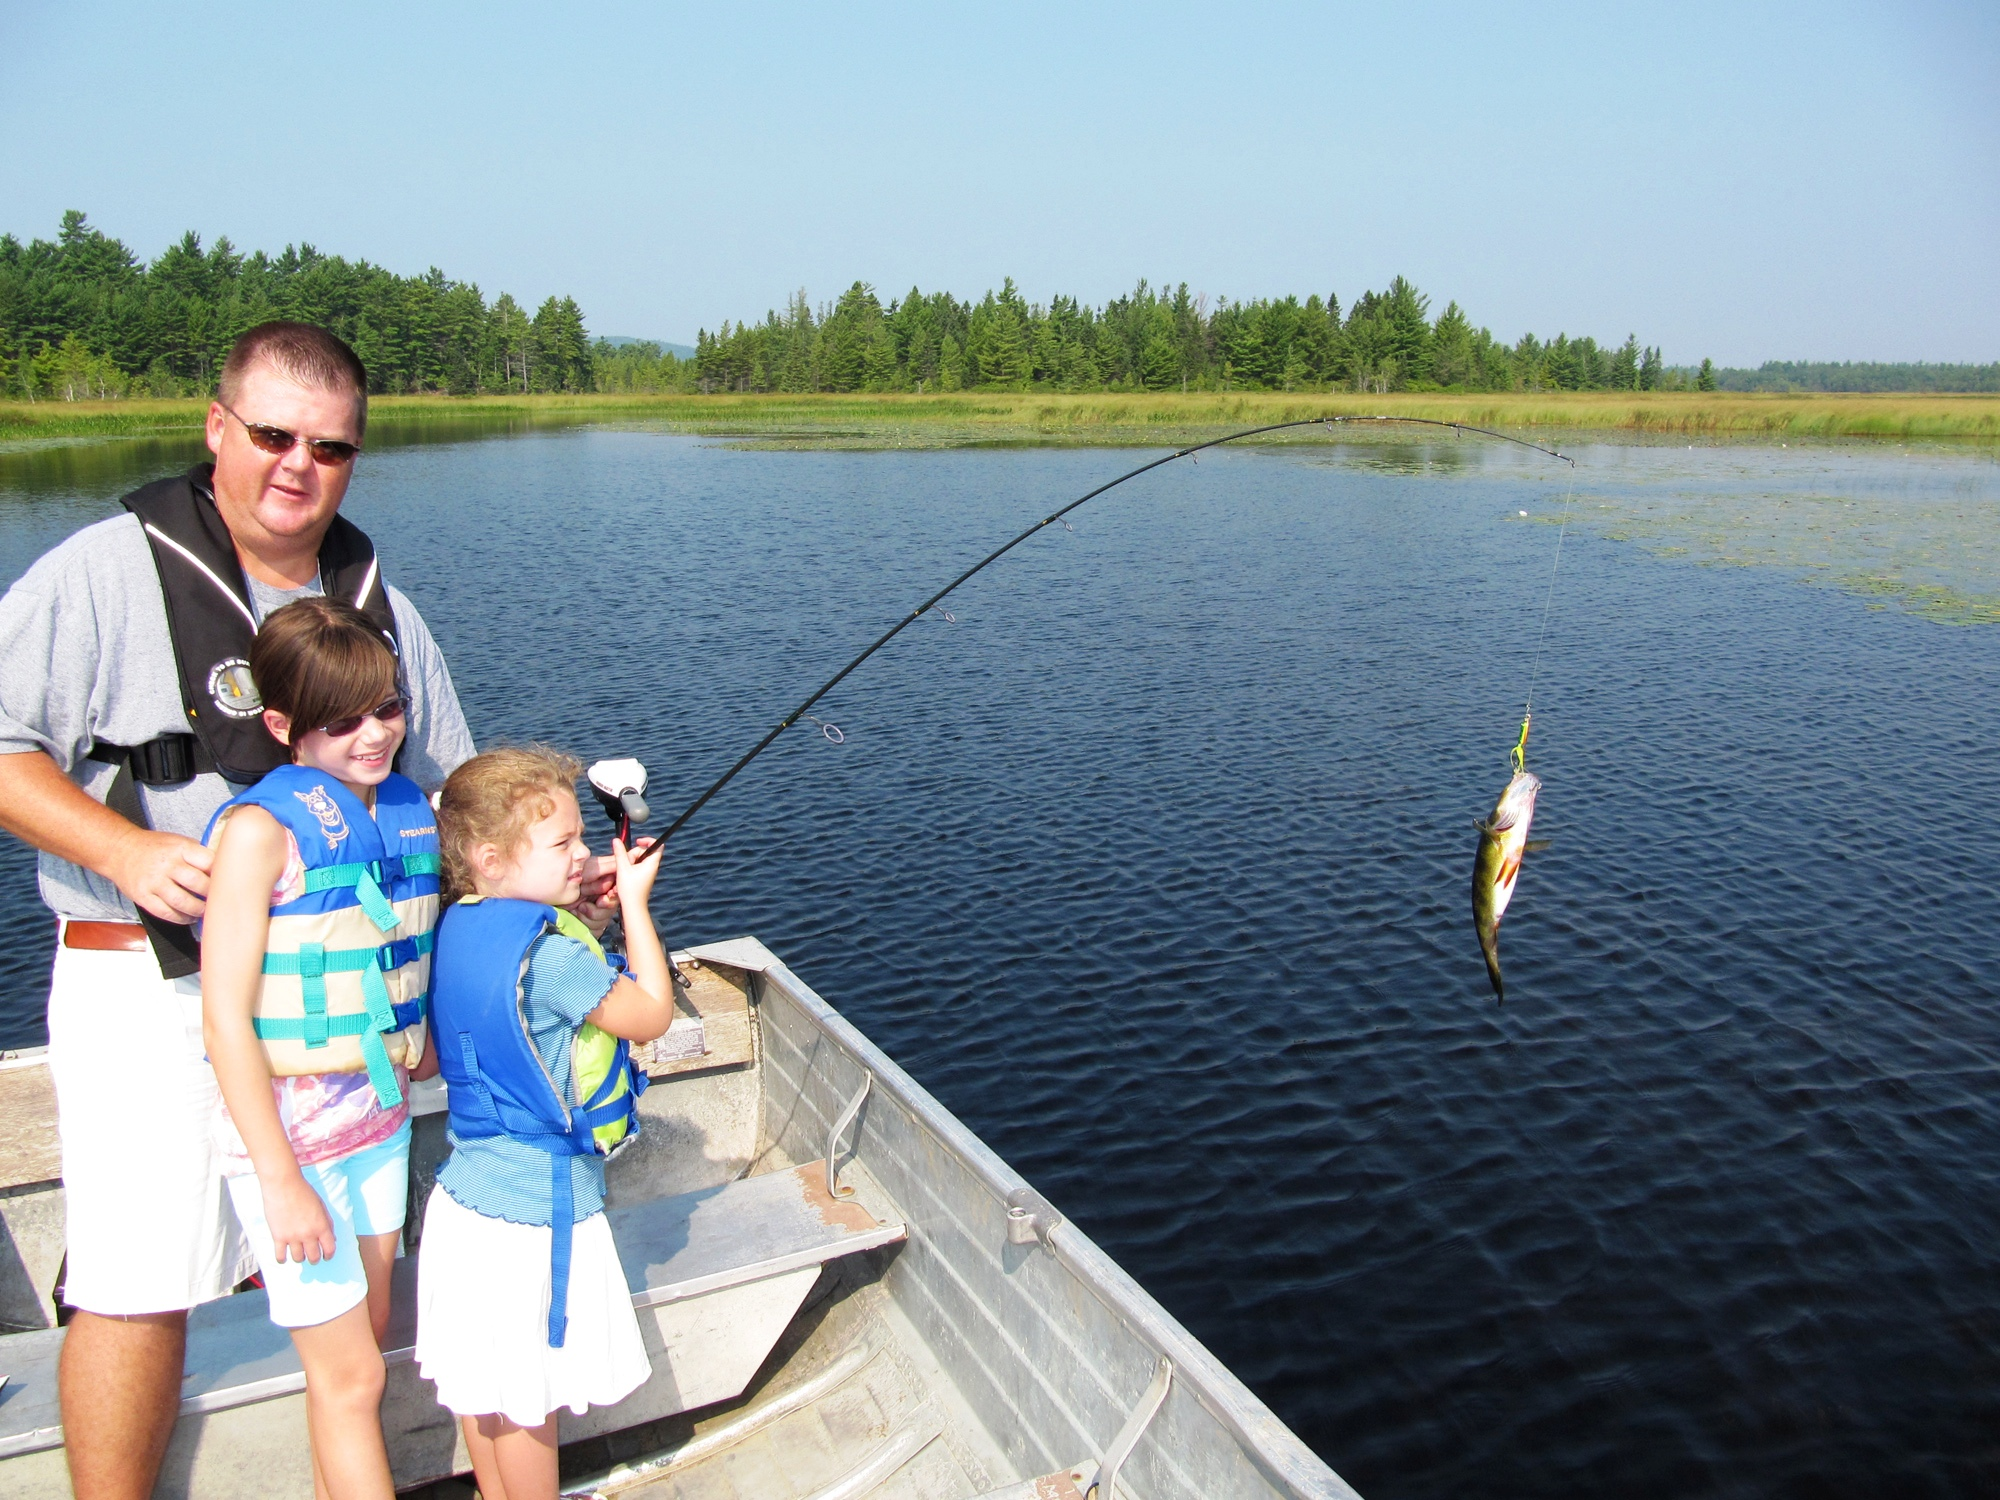 Family fishing on Pocomoonshine Lake